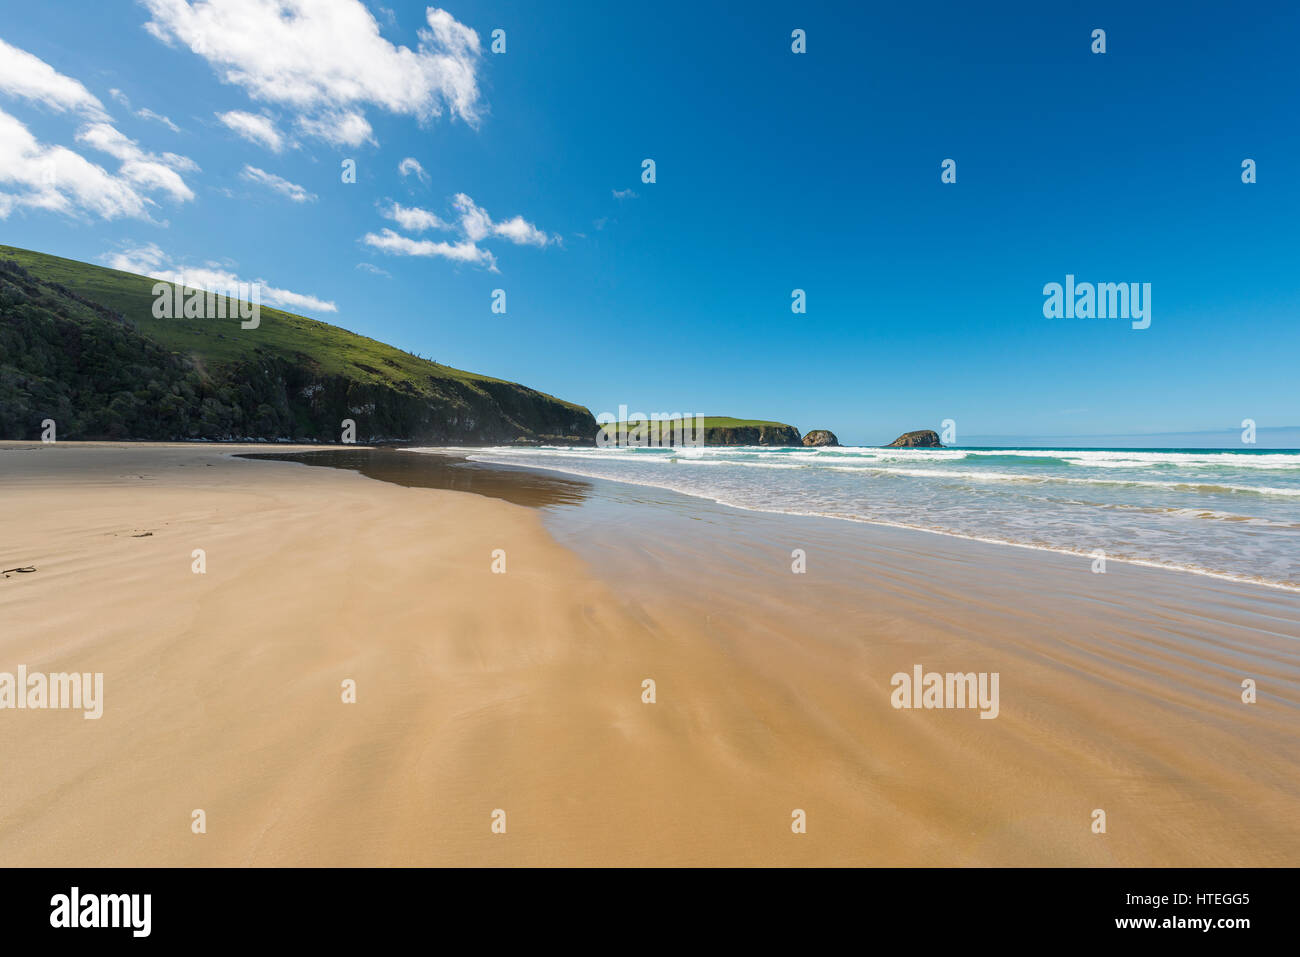 Sandy beach, Tautuku Bay, The Catlins, Southland Region, Southland, New Zealand - Stock Image